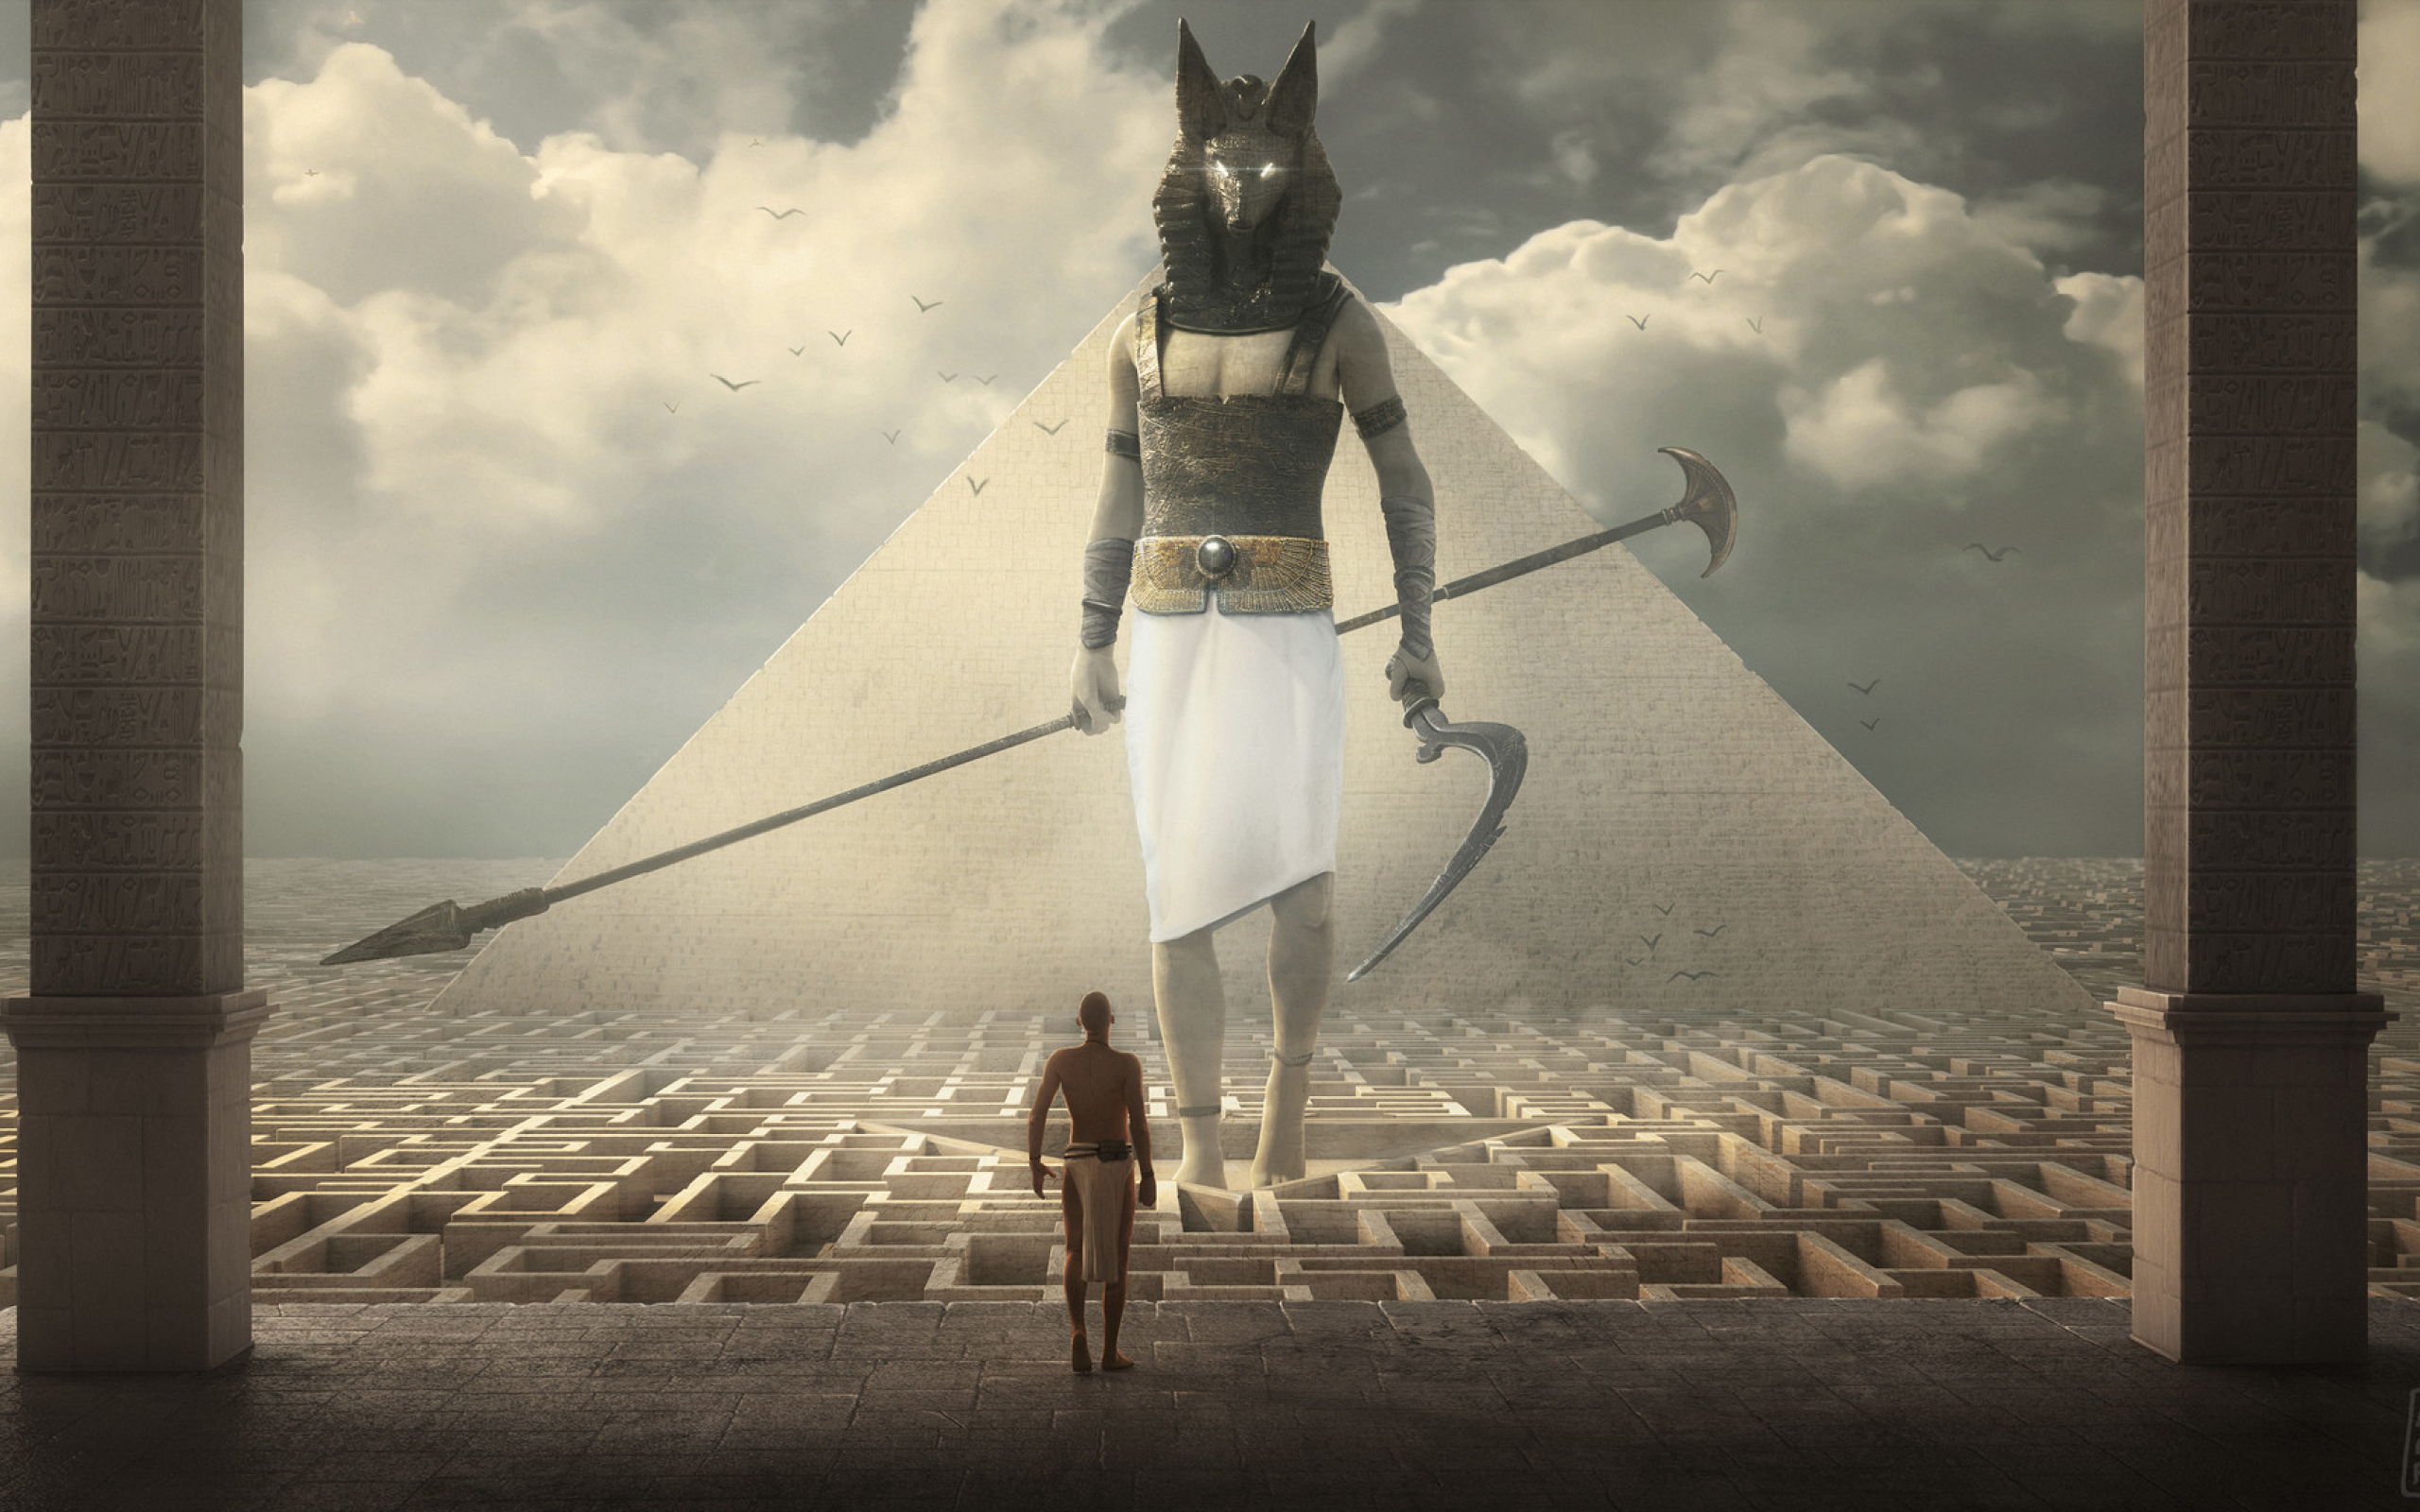 Egypt Warrior Illustration Anubis Pyramid Fantasy Art